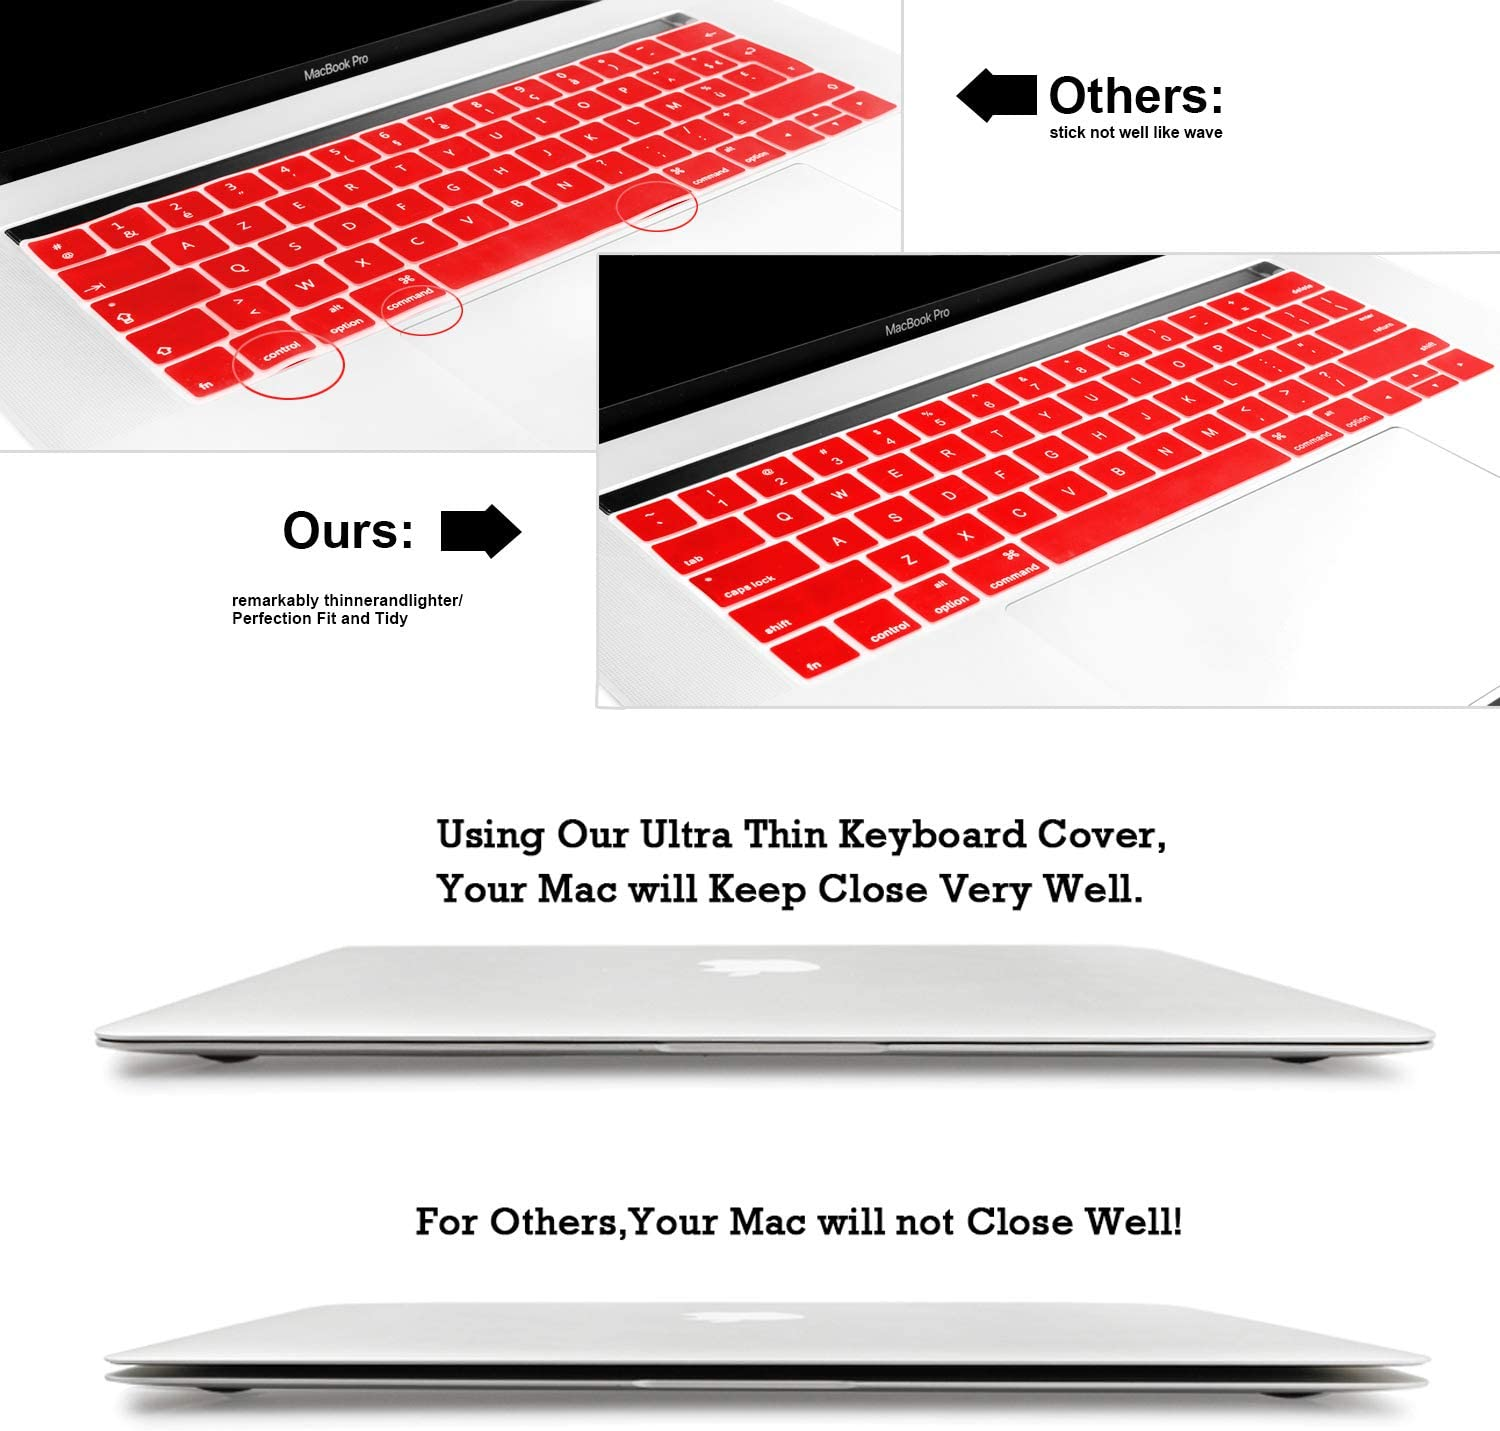 Batianda Waterproof Ultrathin Keyboard Cover Protector Silicone Skin for Newest 2018 2017 2016 MacBook Pro 13 15 inch with Touch Bar /& Touch ID Model:A1989 A1706 Red A1990 A1707